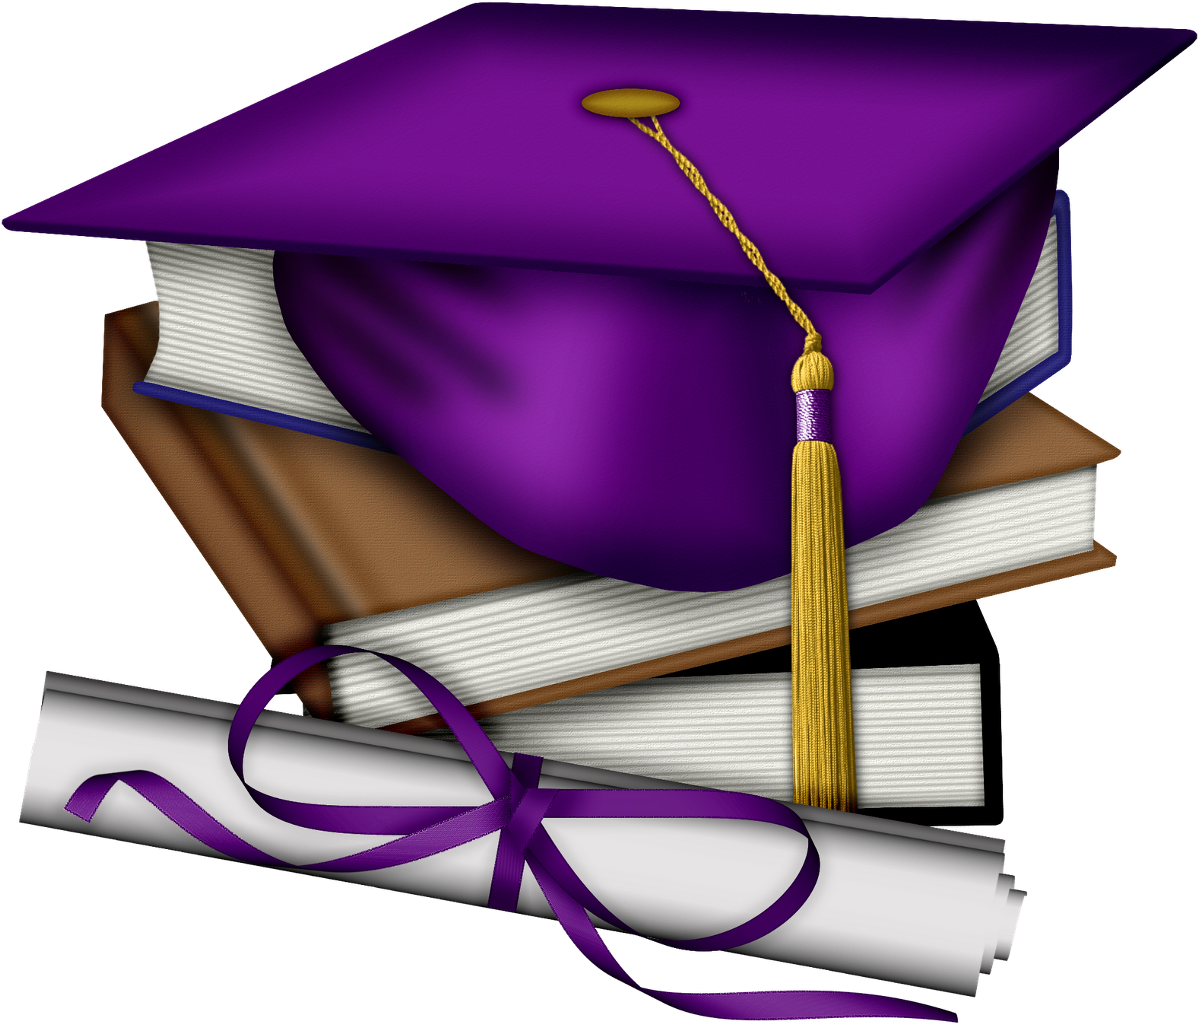 Purple tassel books textbooks. Textbook clipart graduation cap